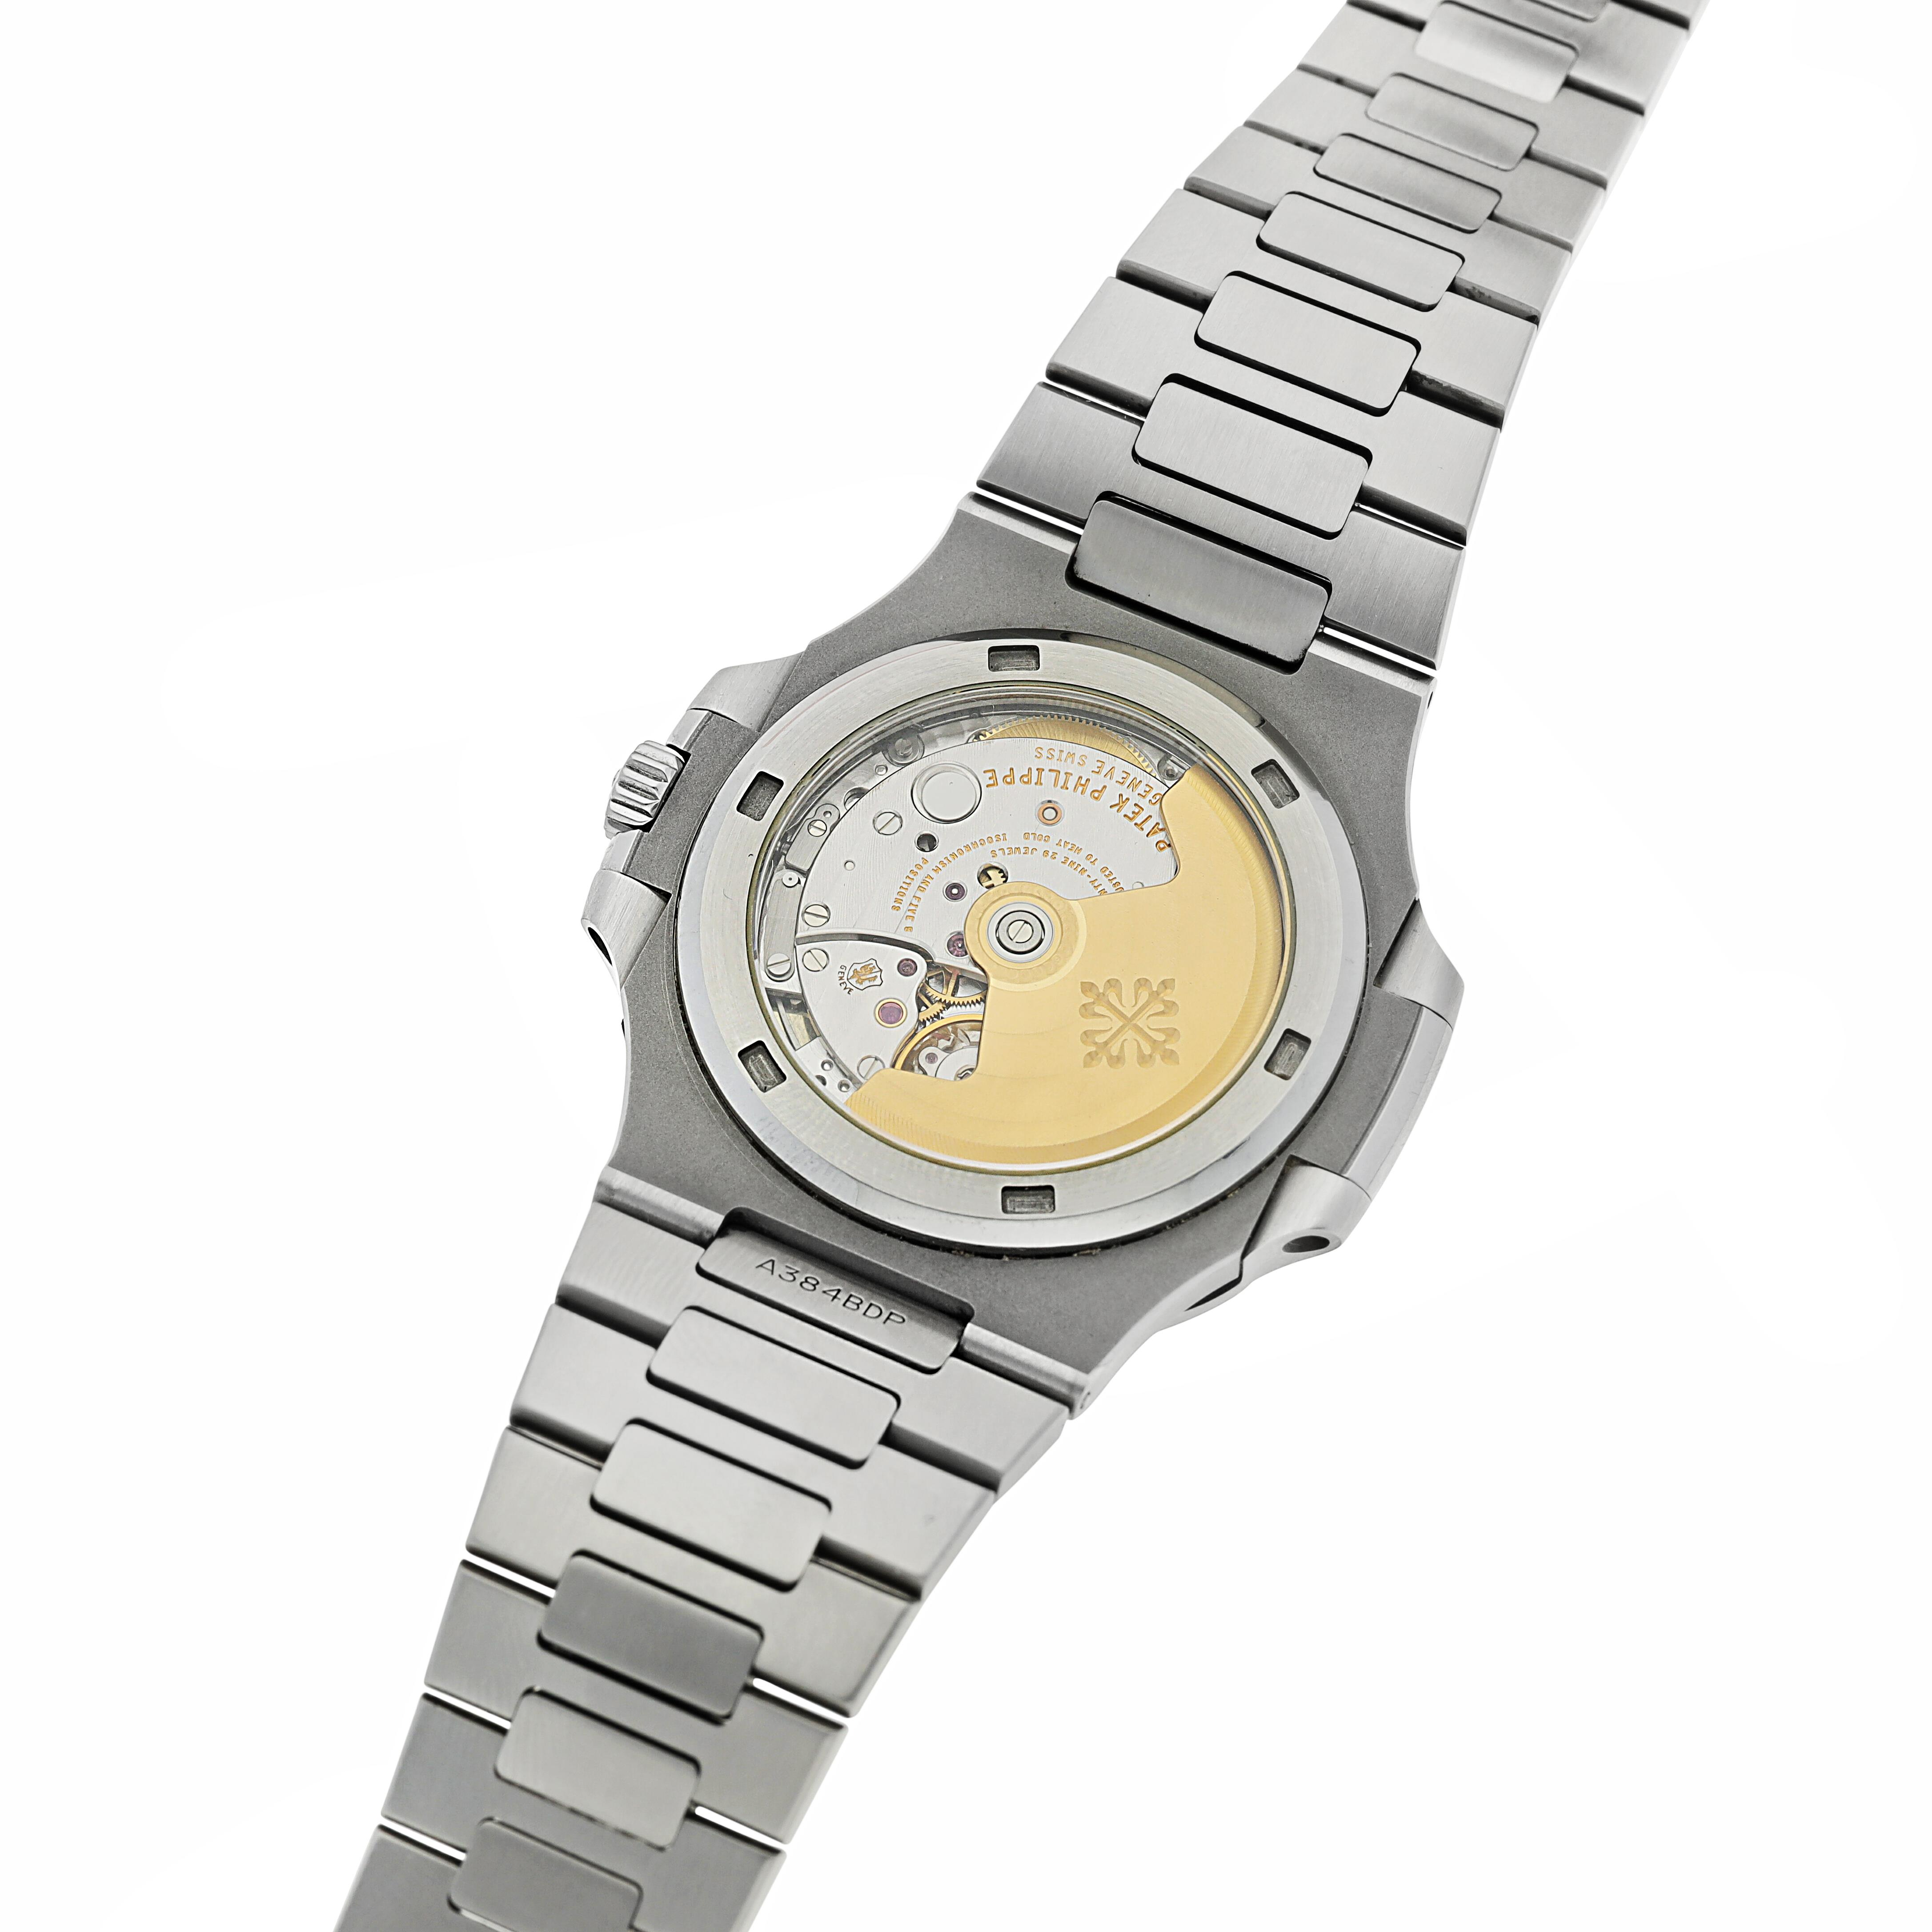 nautilus-reference-57111a-a-stainless-steel-automatic-wristwatch-with-date-and-bracelet-ff1d